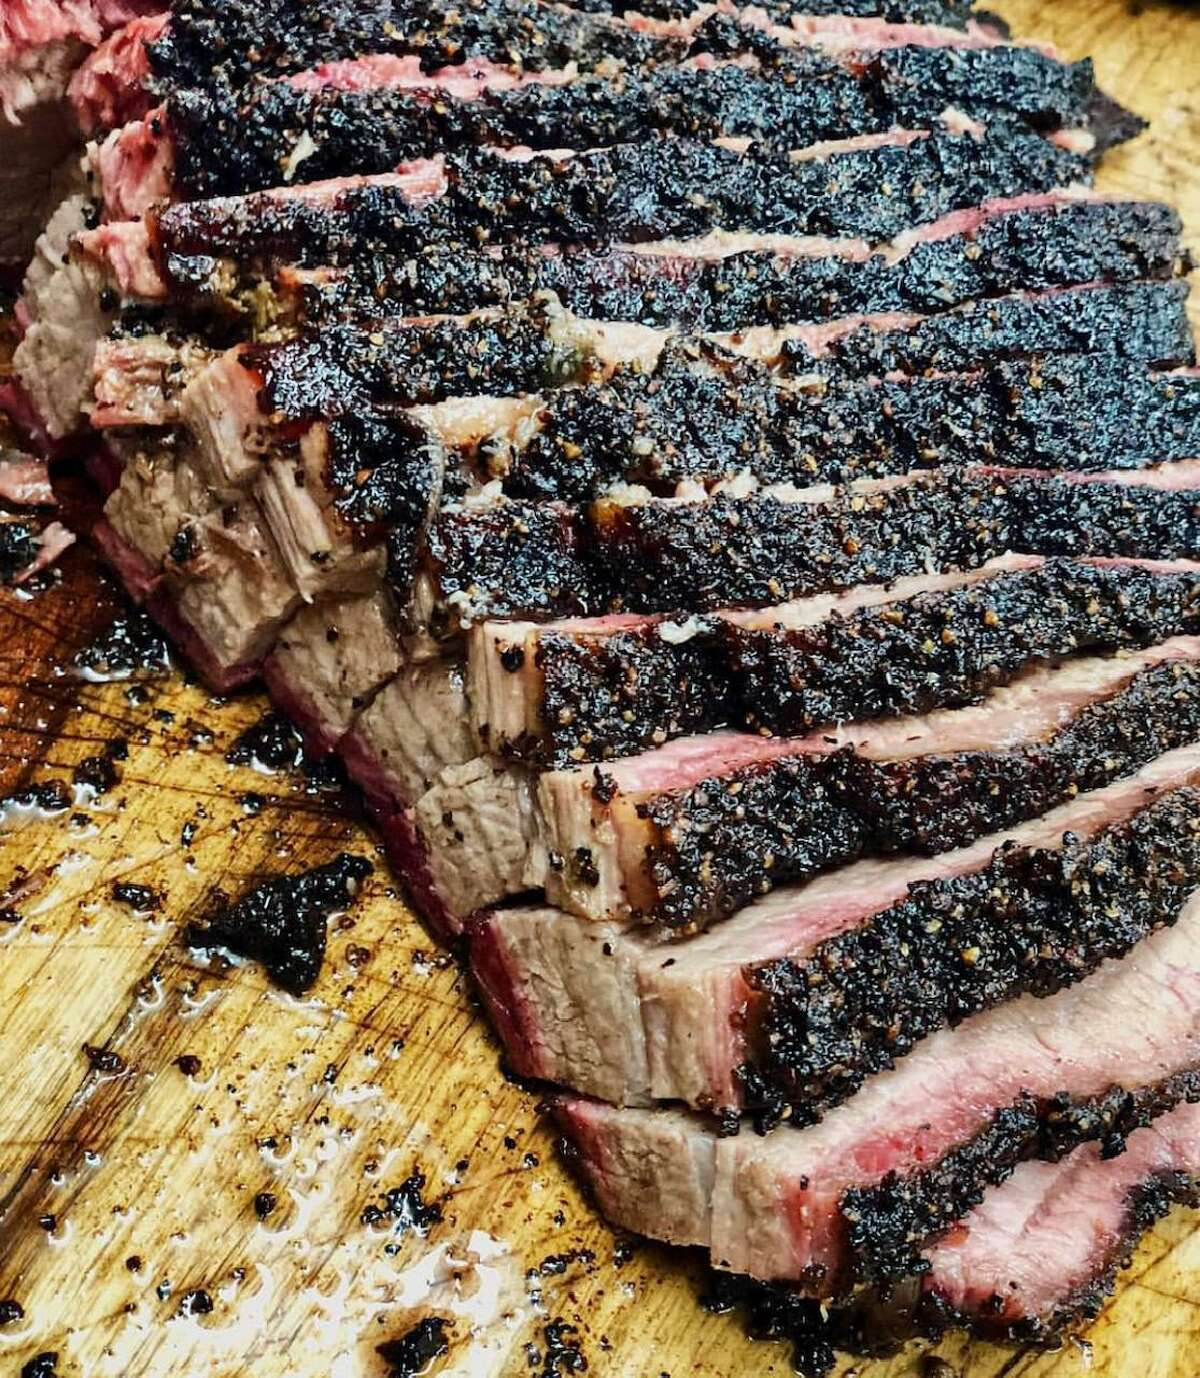 Though many pitmasters still charge one price-per-pound for brisket, barbecue fans also are likely to see a sliding scale on brisket price depending on how much they purchase.